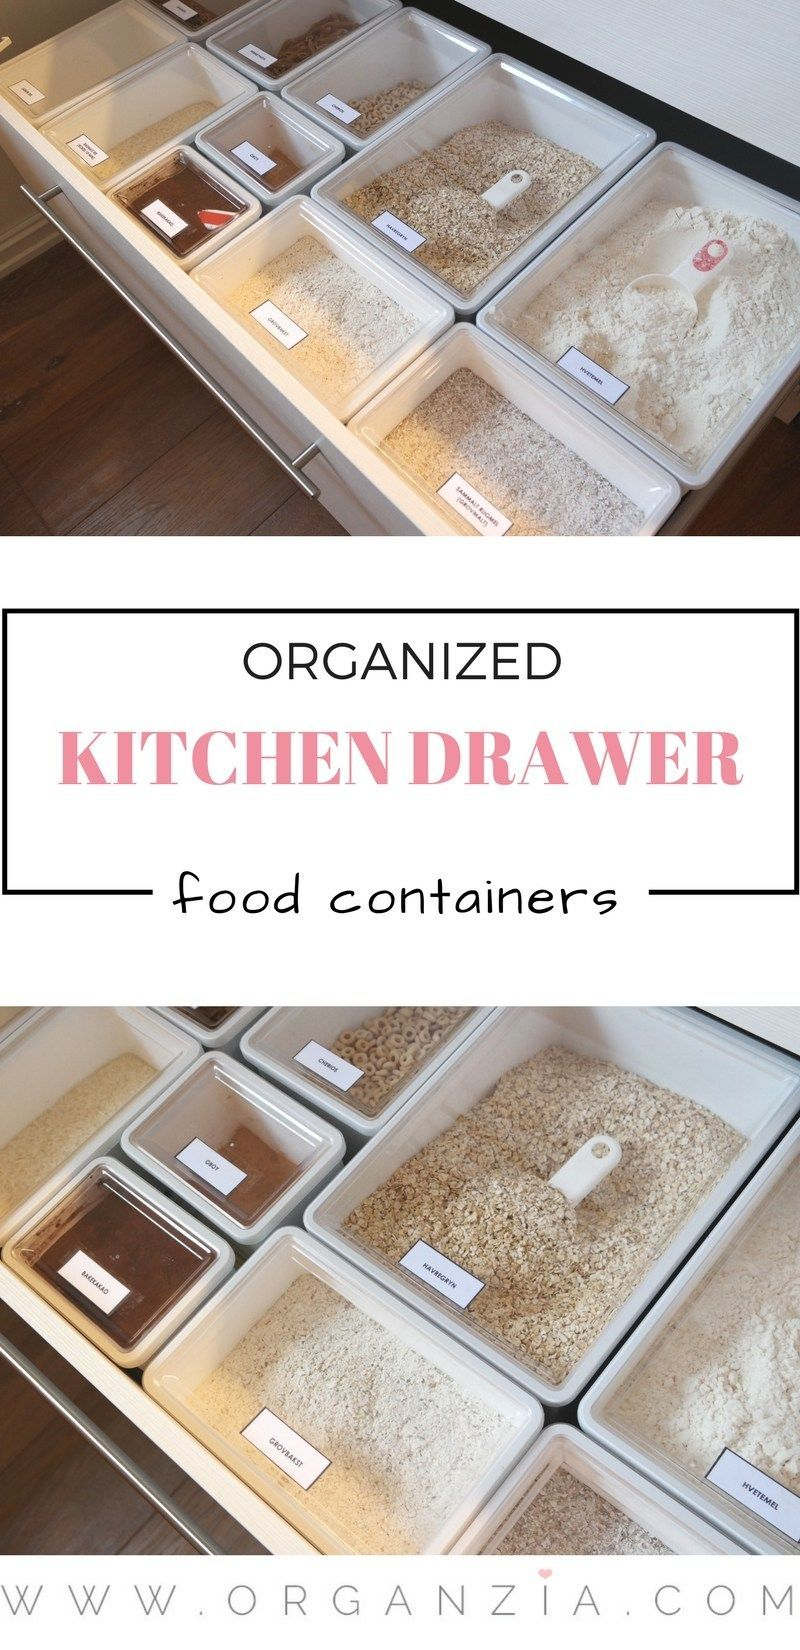 Organized kitchen drawer, finally! - Kitchen drawers, Kitchen drawer organization, Diy kitchen storage, Kitchen organisation, Kitchen organization, Kitchen cabinet organization - Would you also love to have an organized kitchen drawer  Check out how I did it  Organize the kitchen drawer once and for all